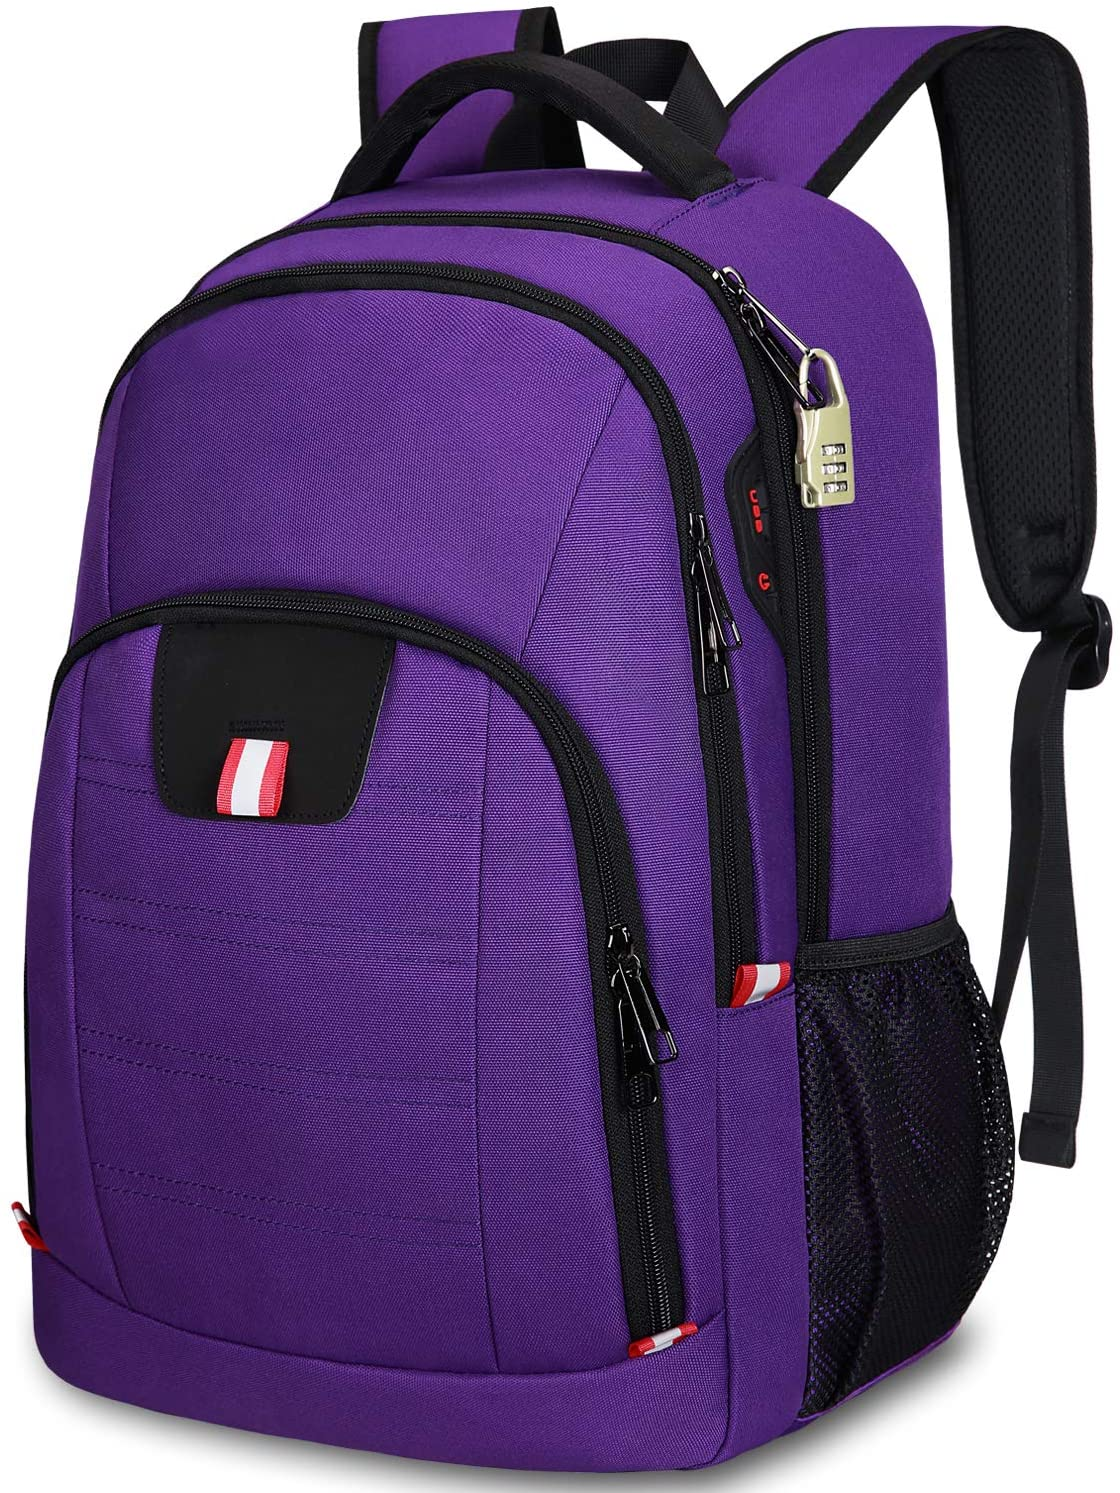 Travel Backpack for Women,15.6 Inch Laptop Backpack School Backpack For Girls with USB Charging Slit, Anti Theft Casual Daypack College Backpack for Women/Girls, Purple